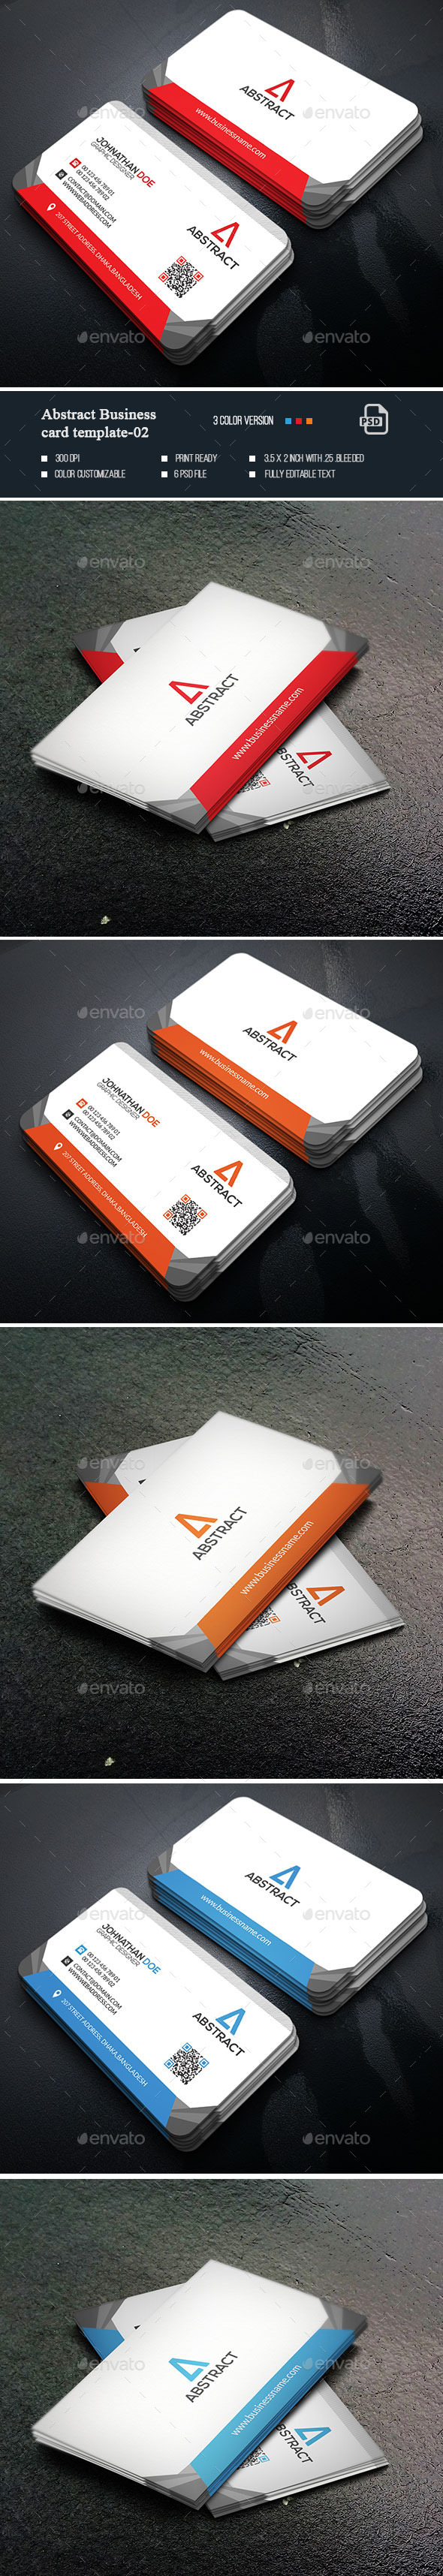 Abstract Business Card Templates-02 - Business Cards Print Templates